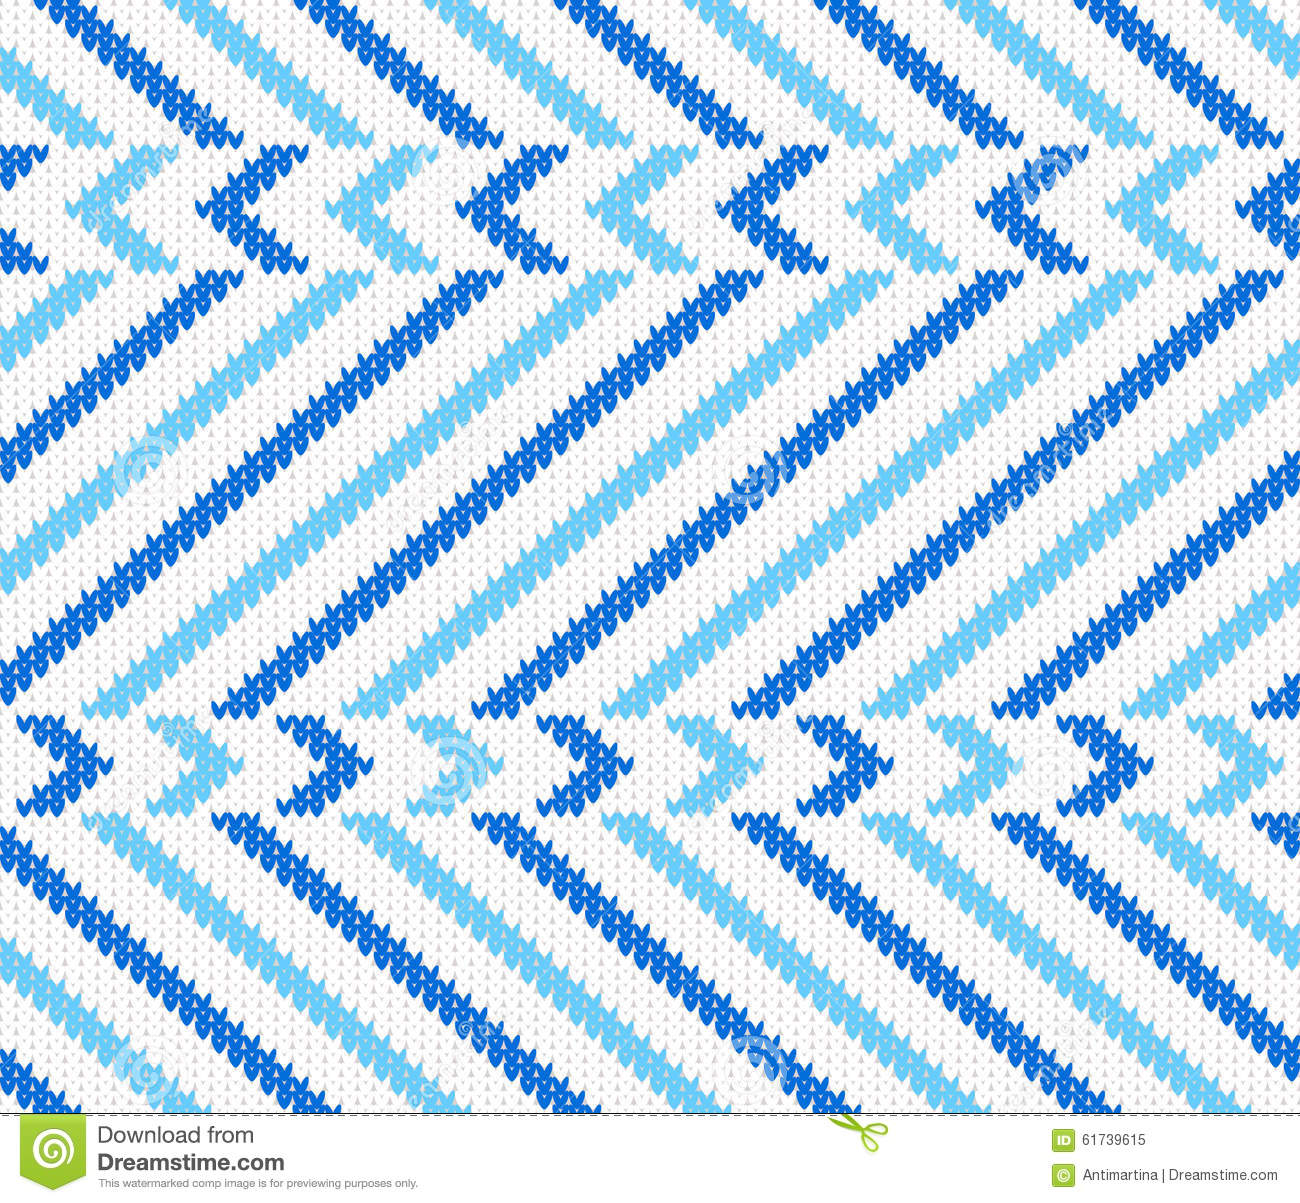 Knitting Pattern Vector Download : Seamless Knitting Pattern Stock Vector - Image: 61739615